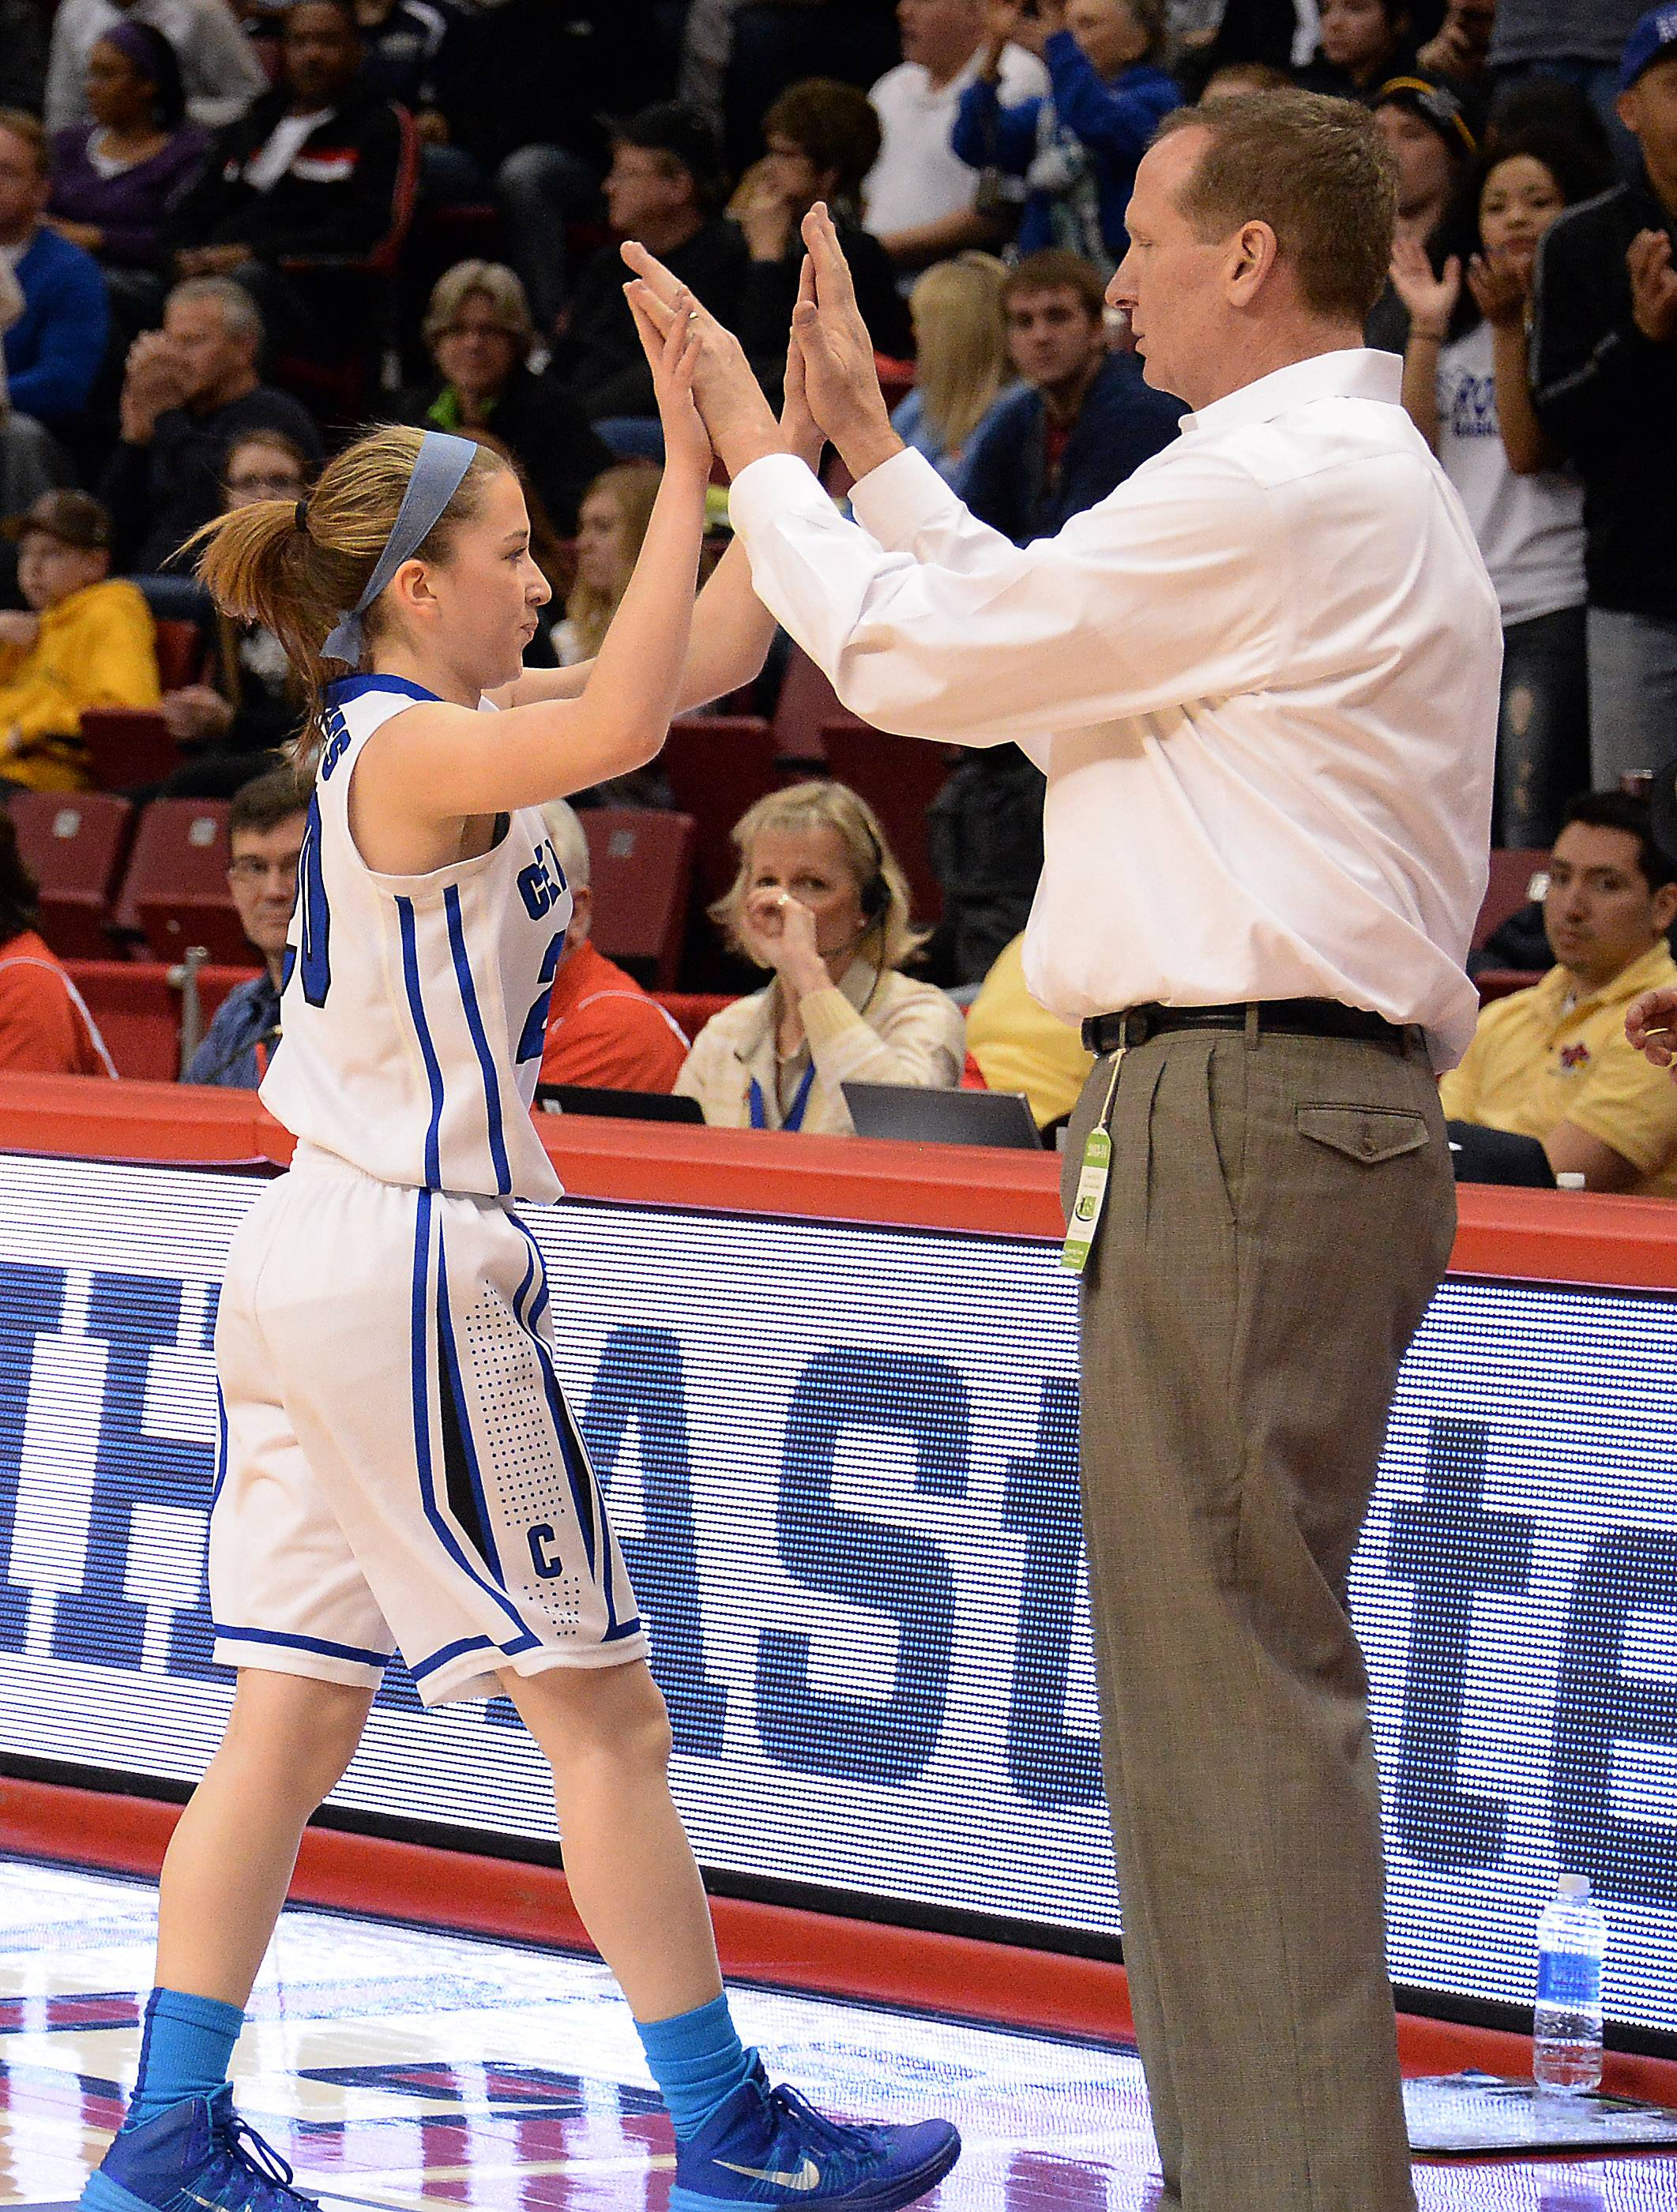 Burlington Central's Kathleen Ratzek, the only senior on the team,  high-fives her coach ,Mark Smith, as she exits the floor at the end of the game Saturday in Normal.  i